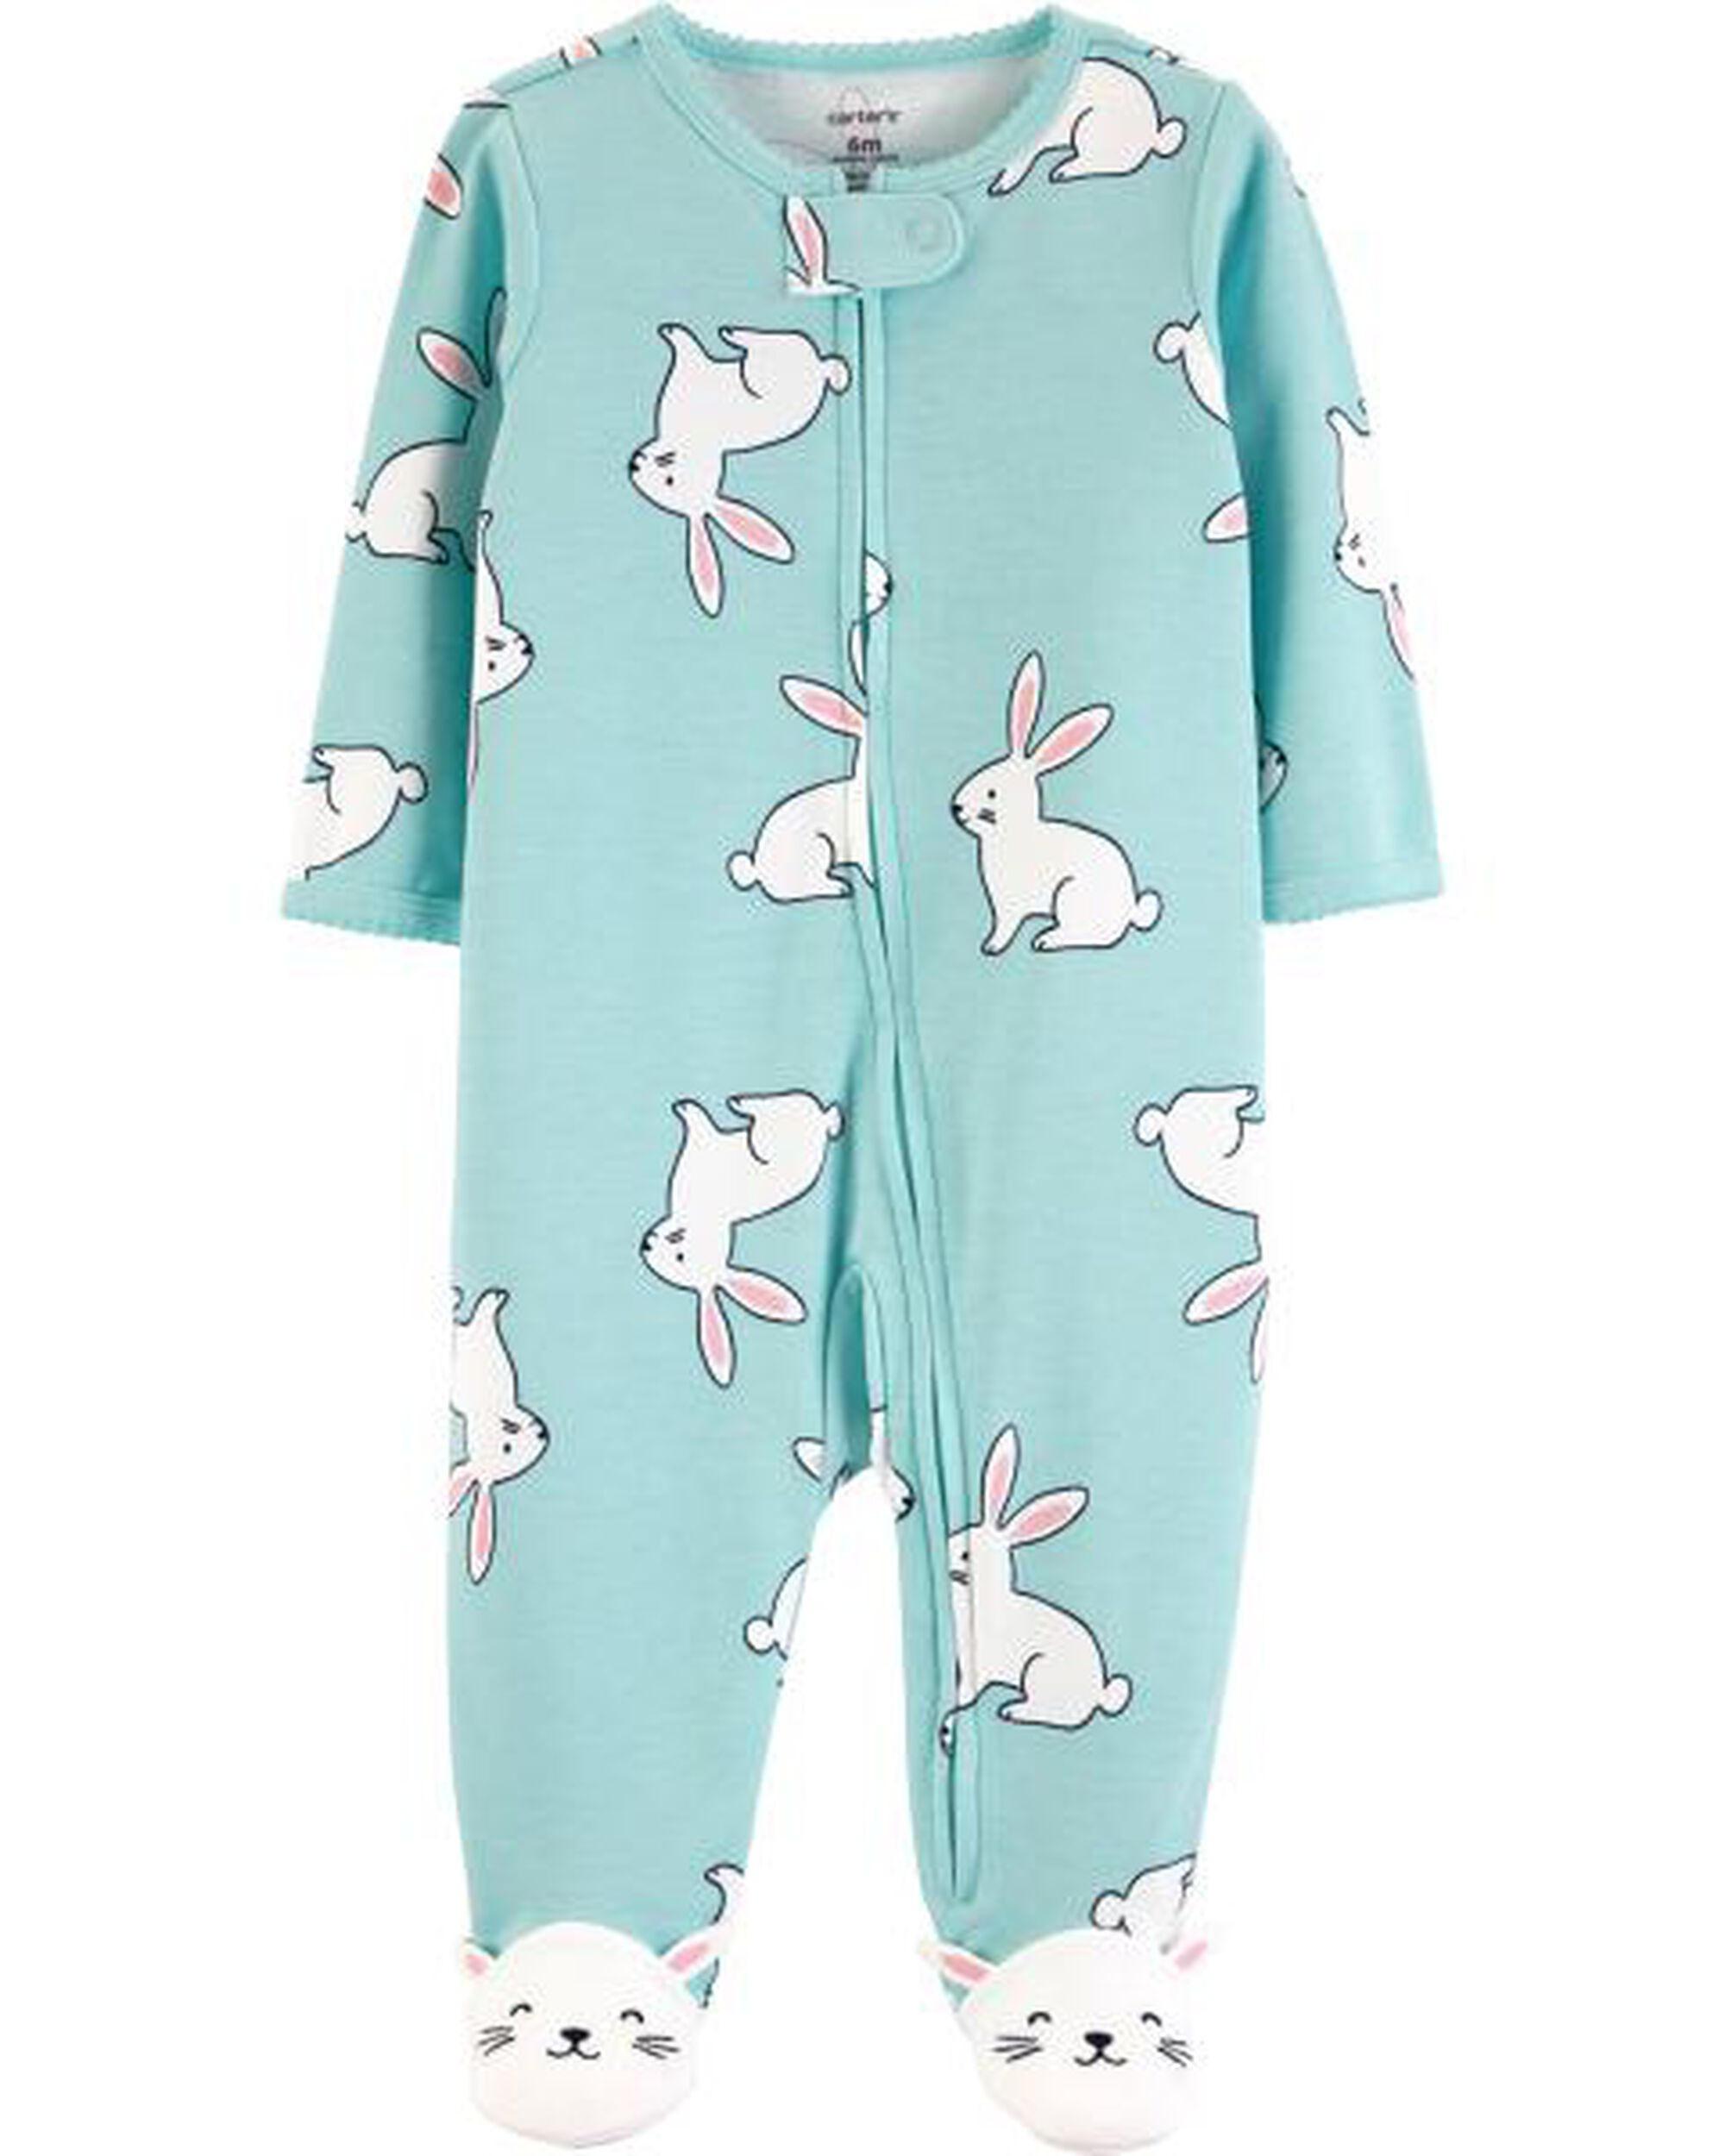 Bunny Zip-Up Cotton Sleep   Play. Loading zoom cc3f70fcf